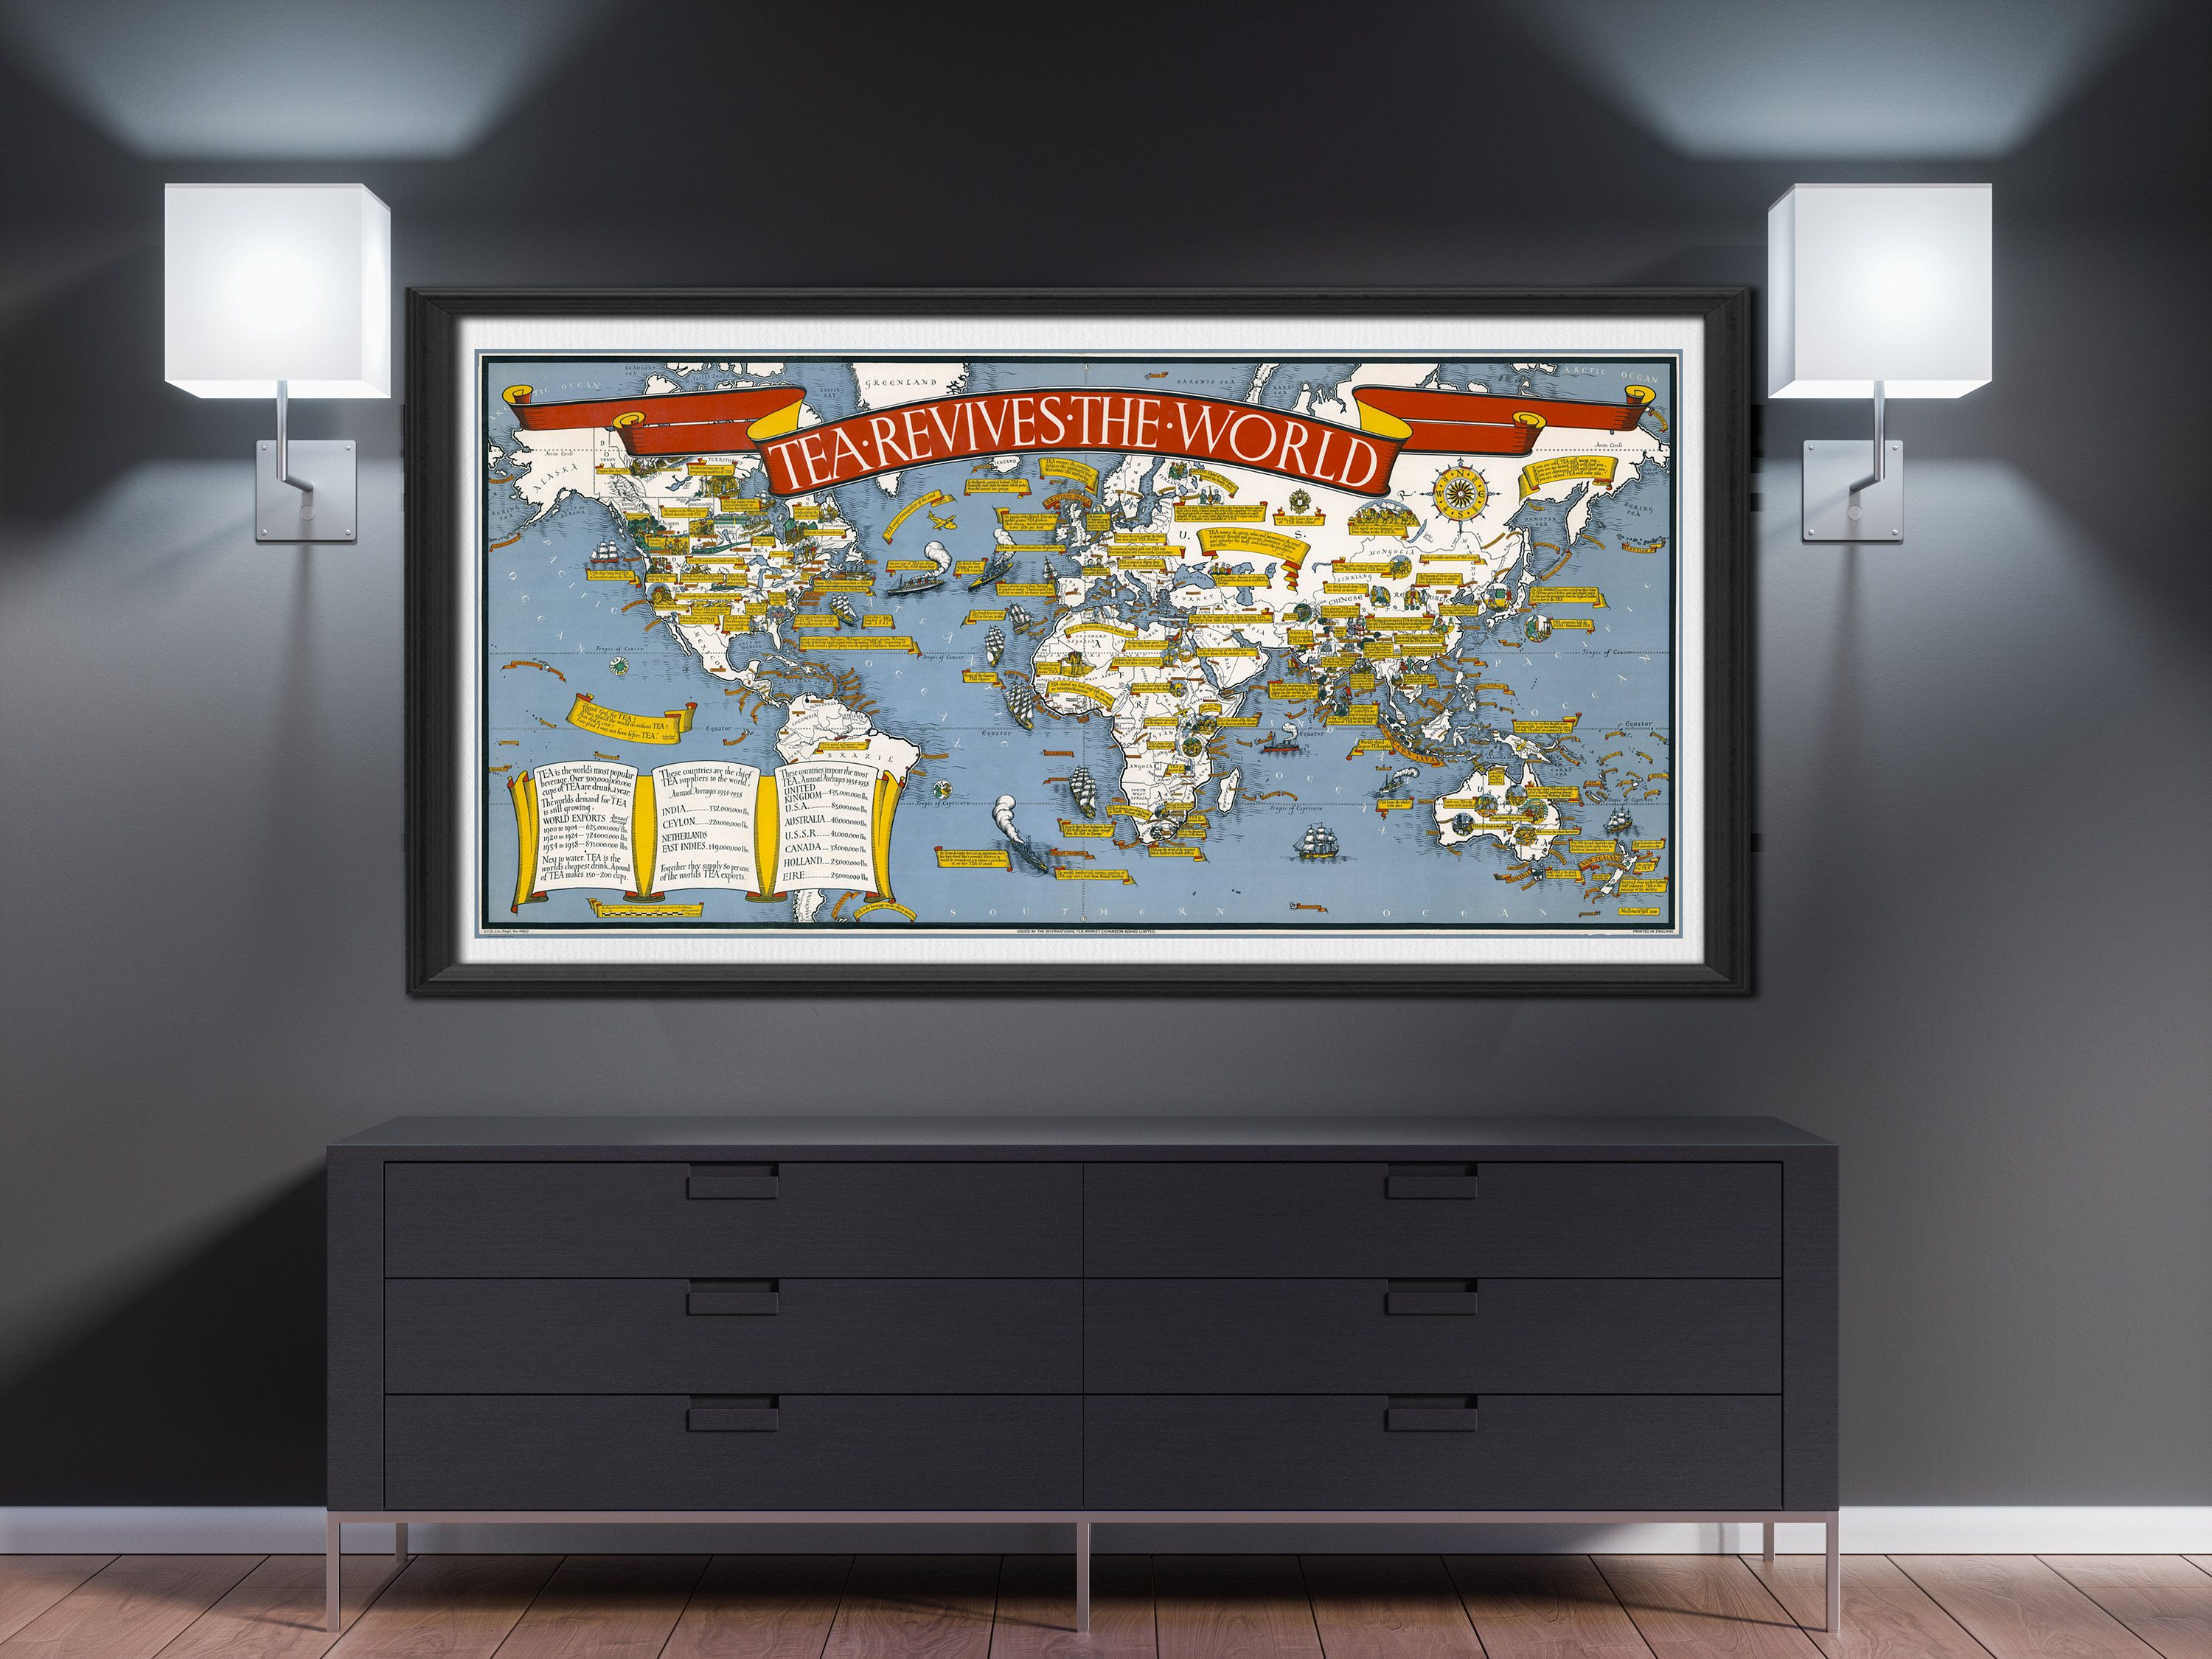 World map print tea revives the world world map poster world map world map print tea revives the world world map poster world map wall art old world map vintage world map world map room decor push pin gumiabroncs Images